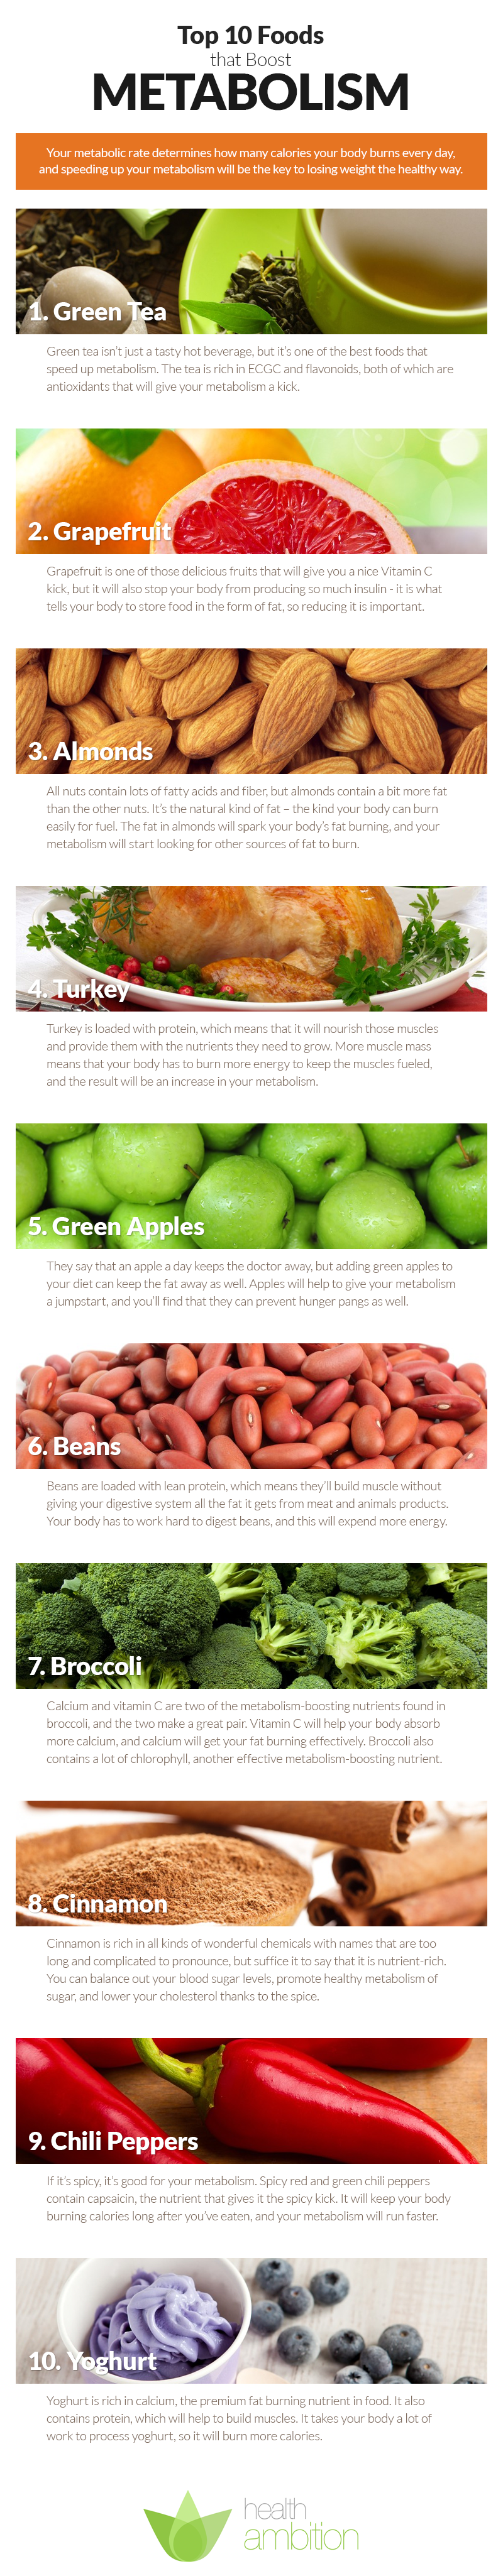 Top 10 Foods that Boost Metabolism - http://www.healthambition.com/foods-that-boost-metabolism/